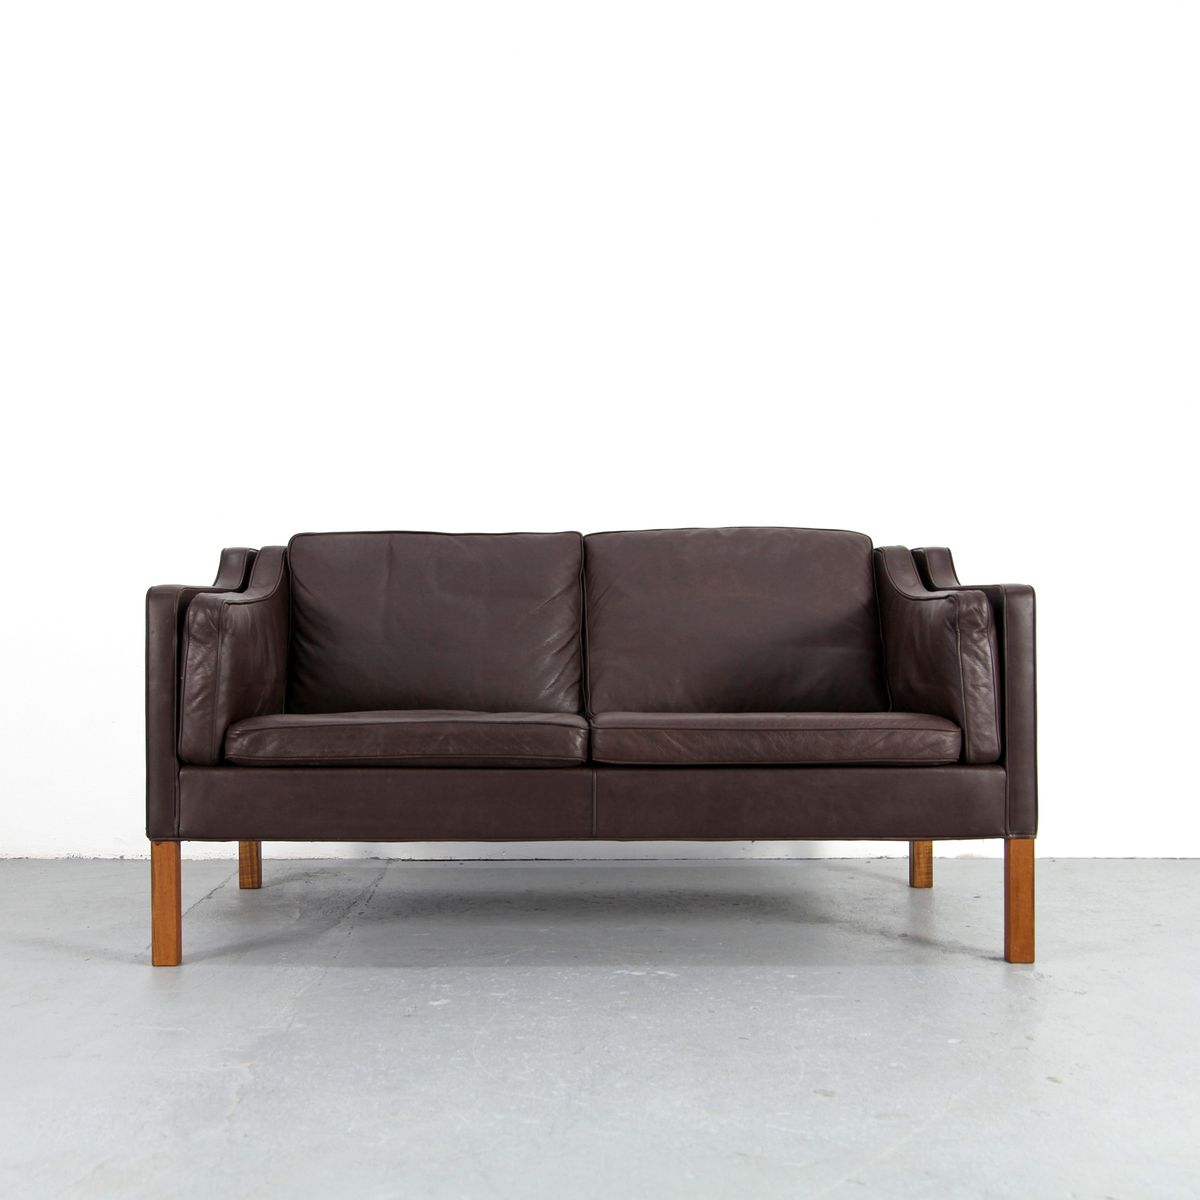 2212 two seater sofa by b rge mogensen for fredericia. Black Bedroom Furniture Sets. Home Design Ideas